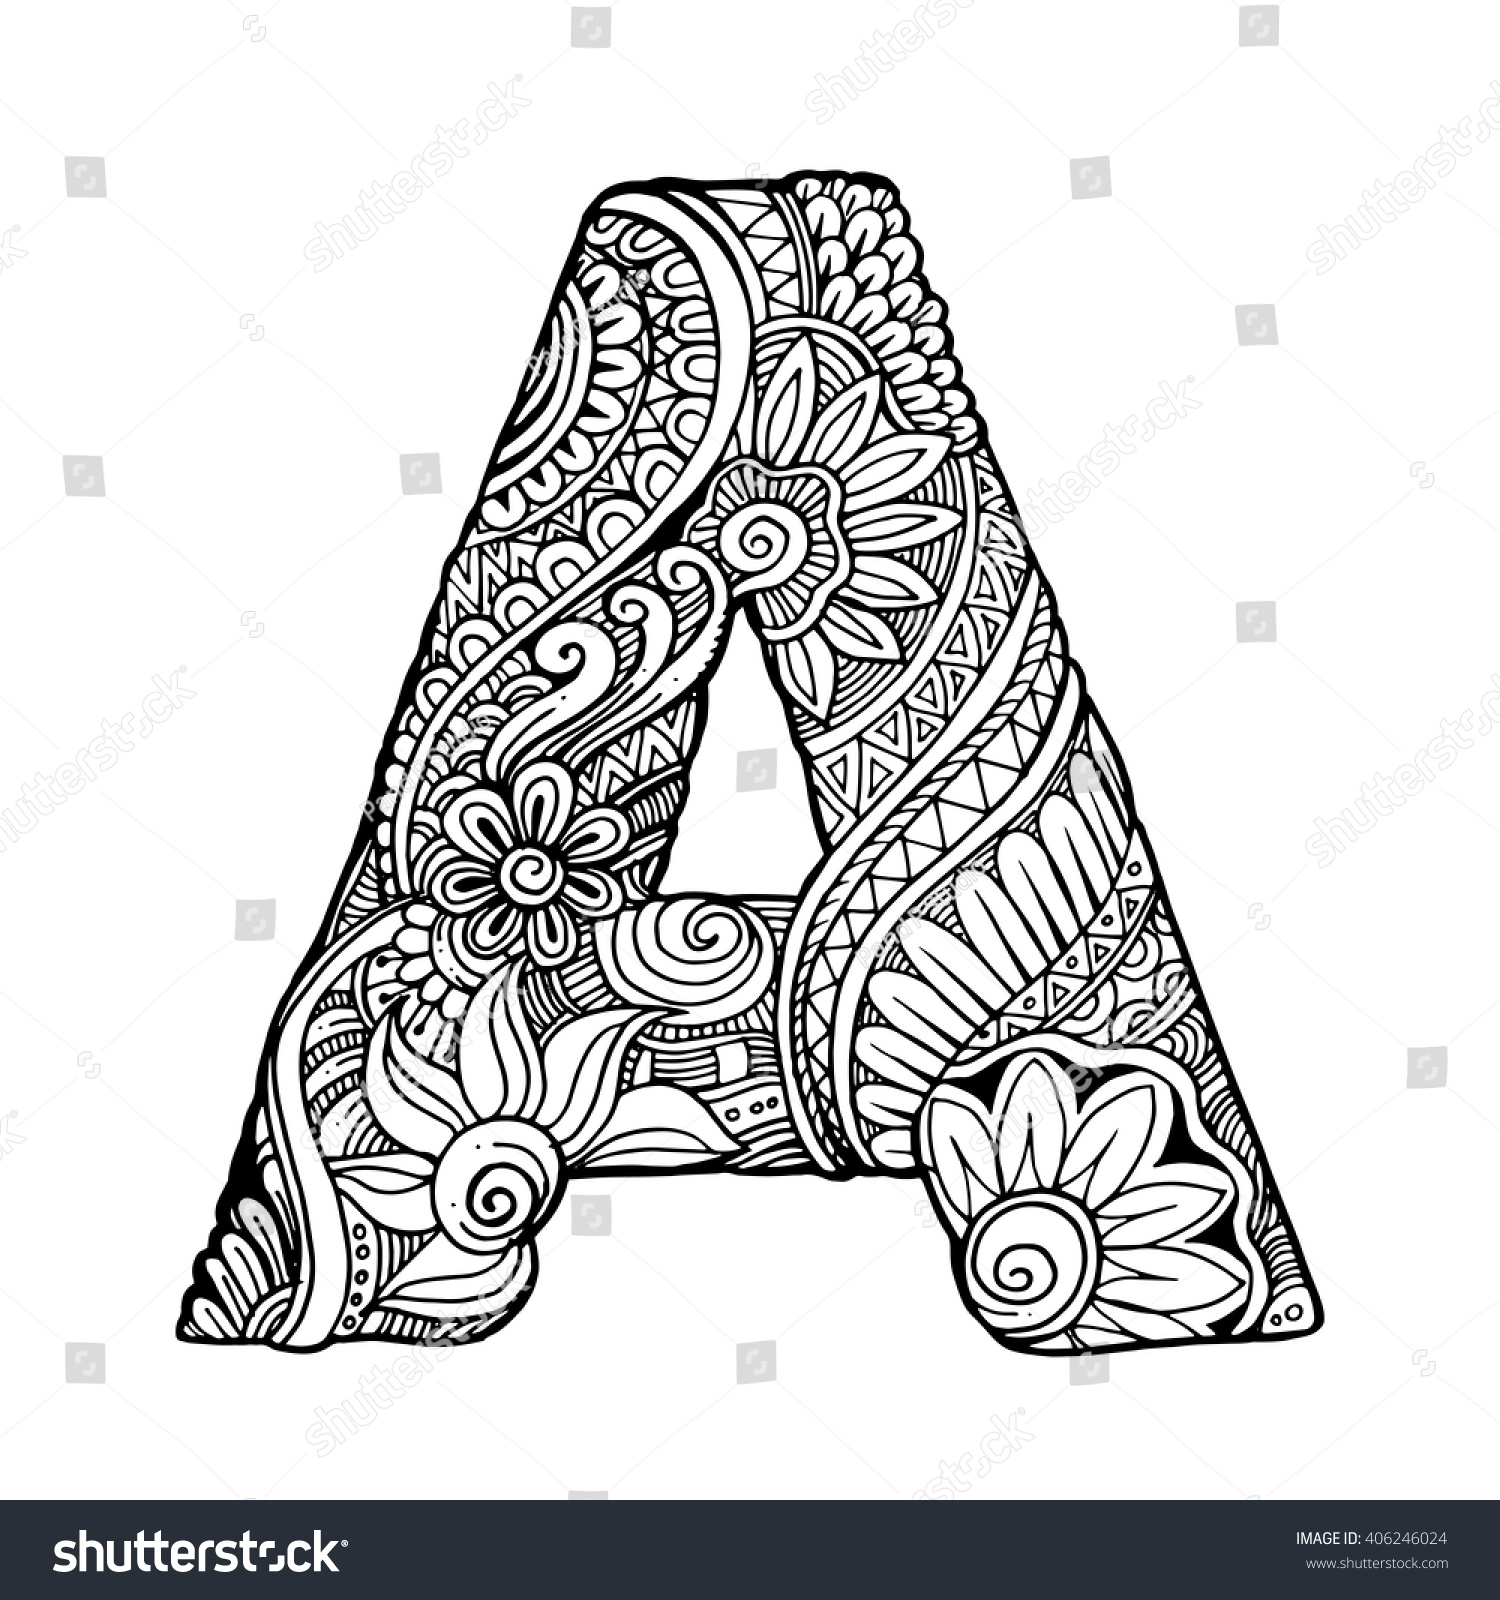 Zentangle Stylized Alphabet Letter A Vector Stock